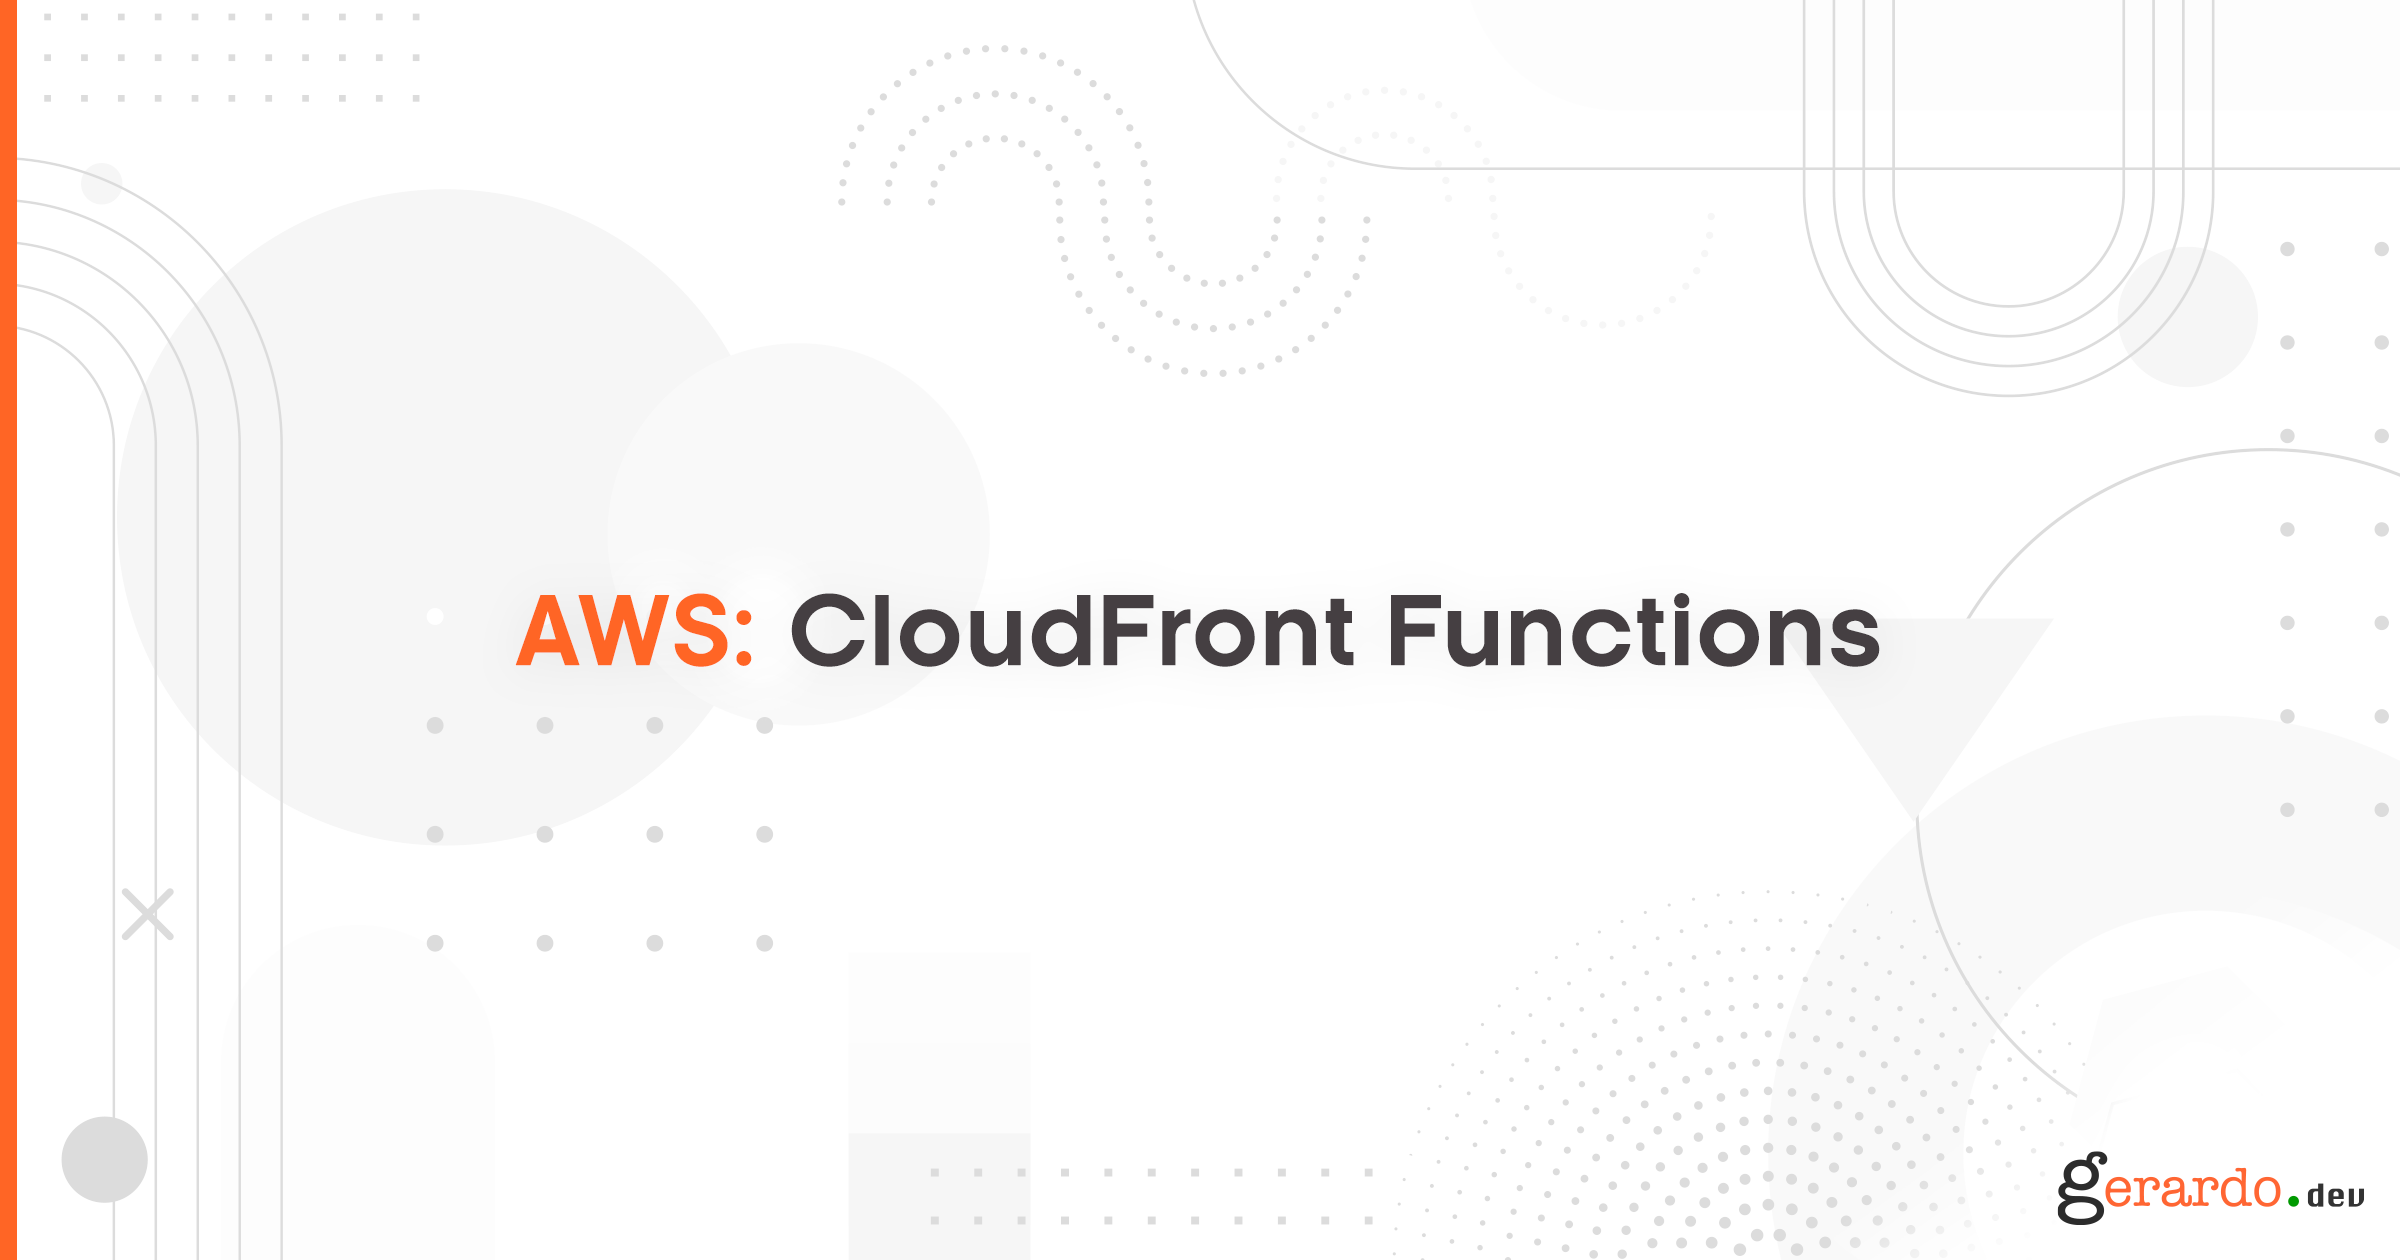 AWS CloudFront Functions